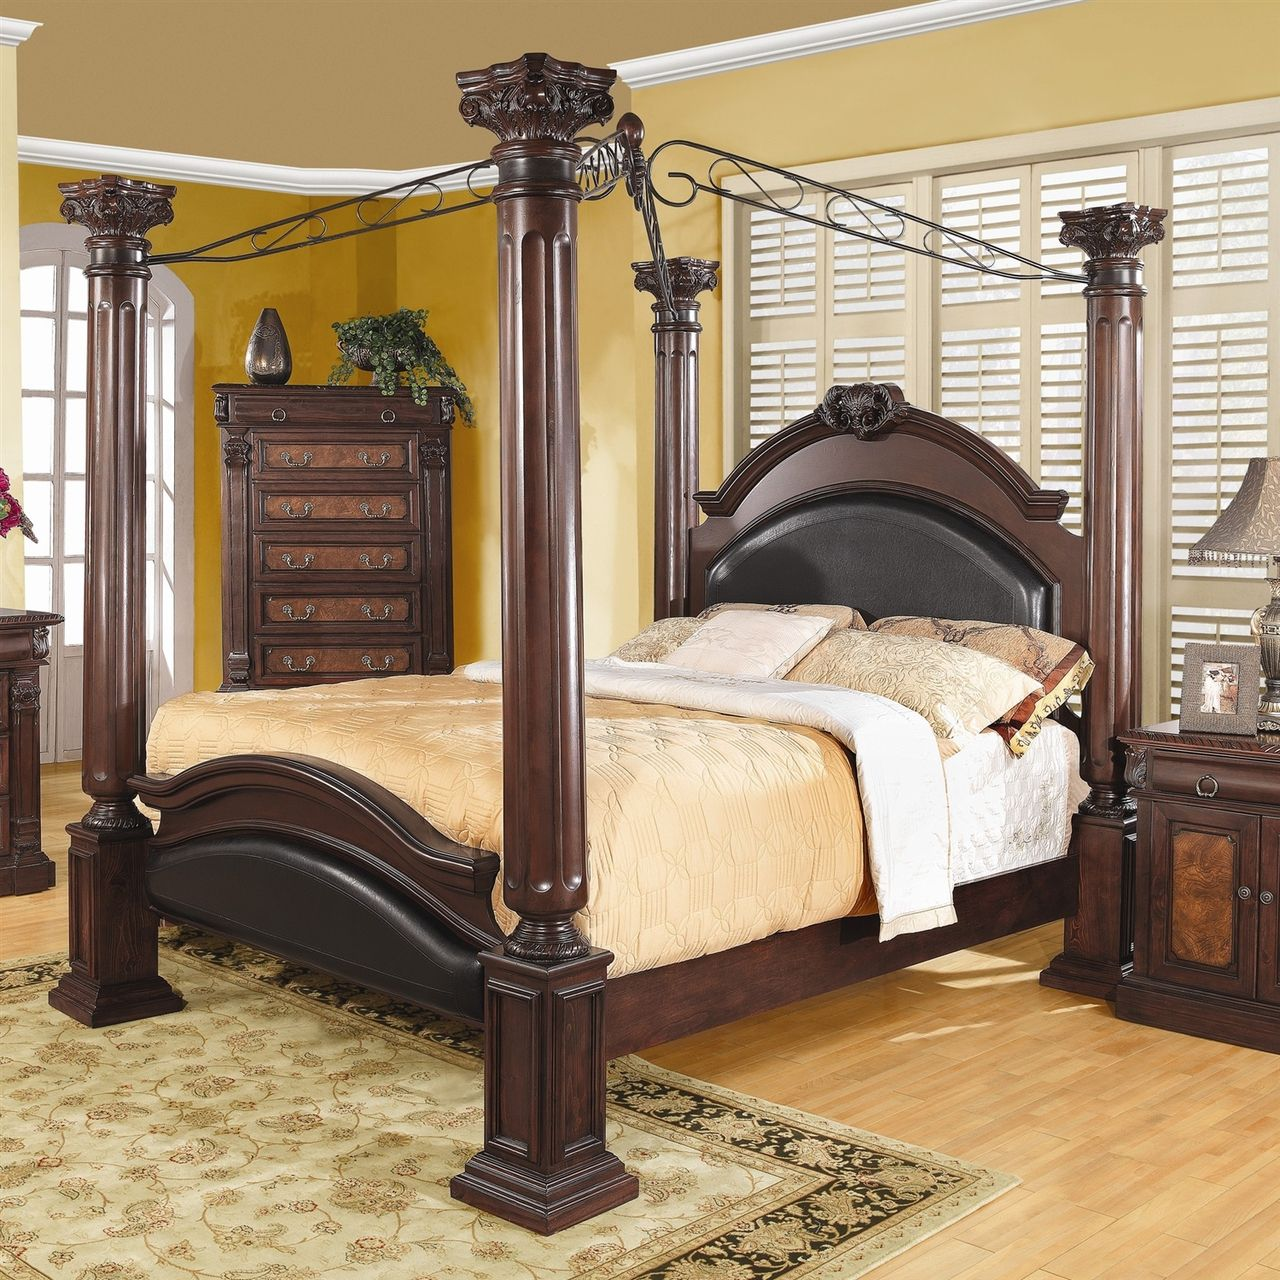 King size 4 Poster Canopy Bed with Large Decorative Posts ...